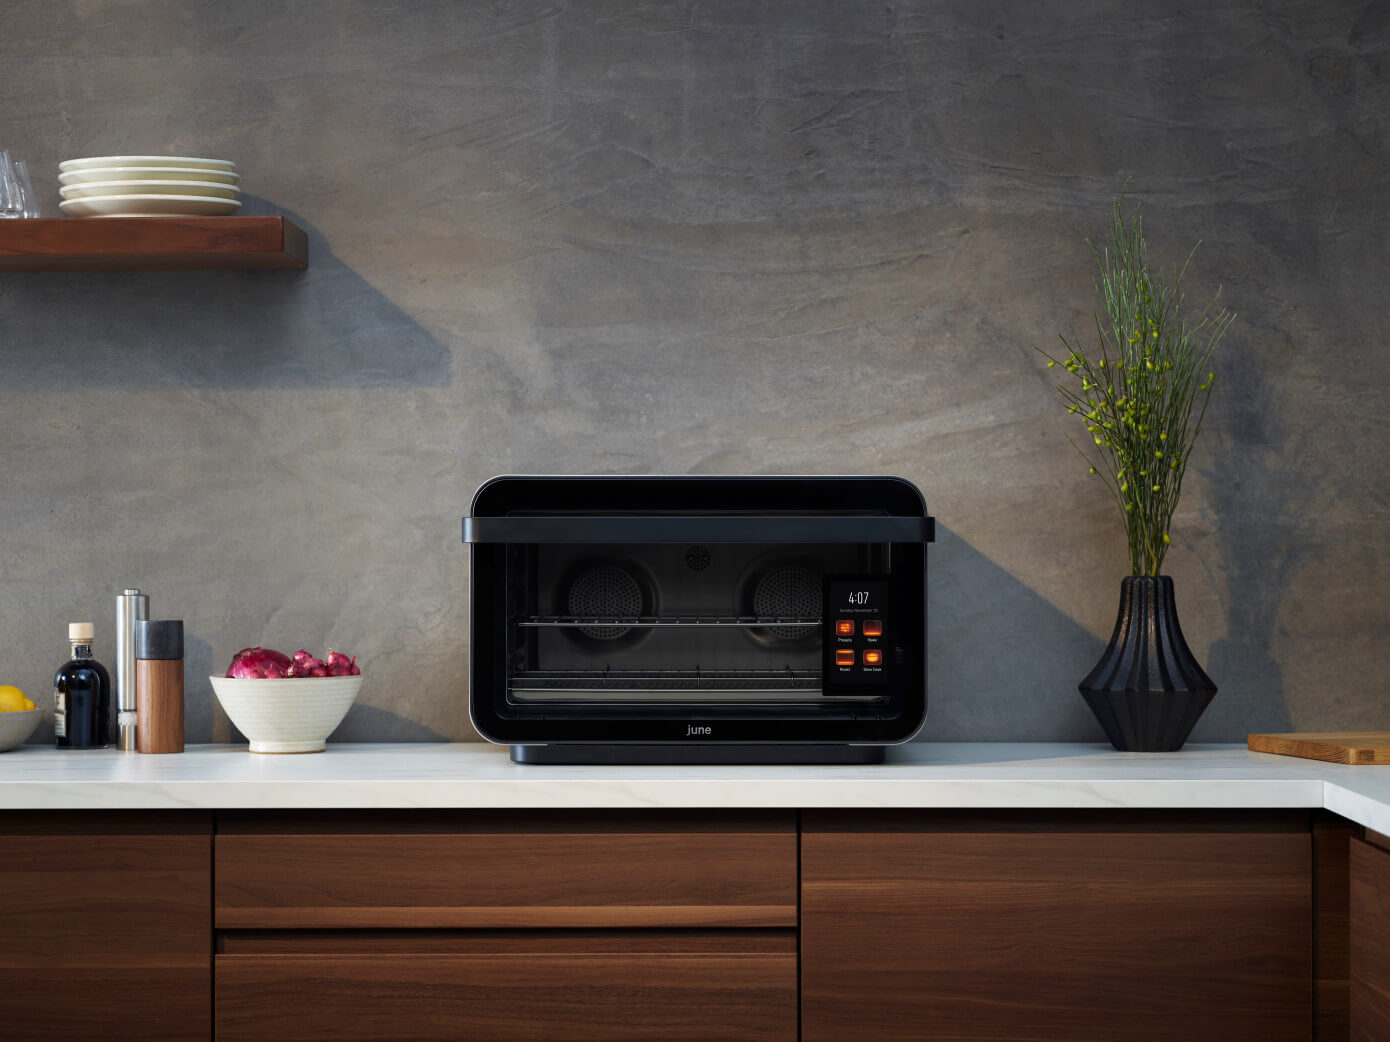 June's Second-Generation Oven Begins At $599